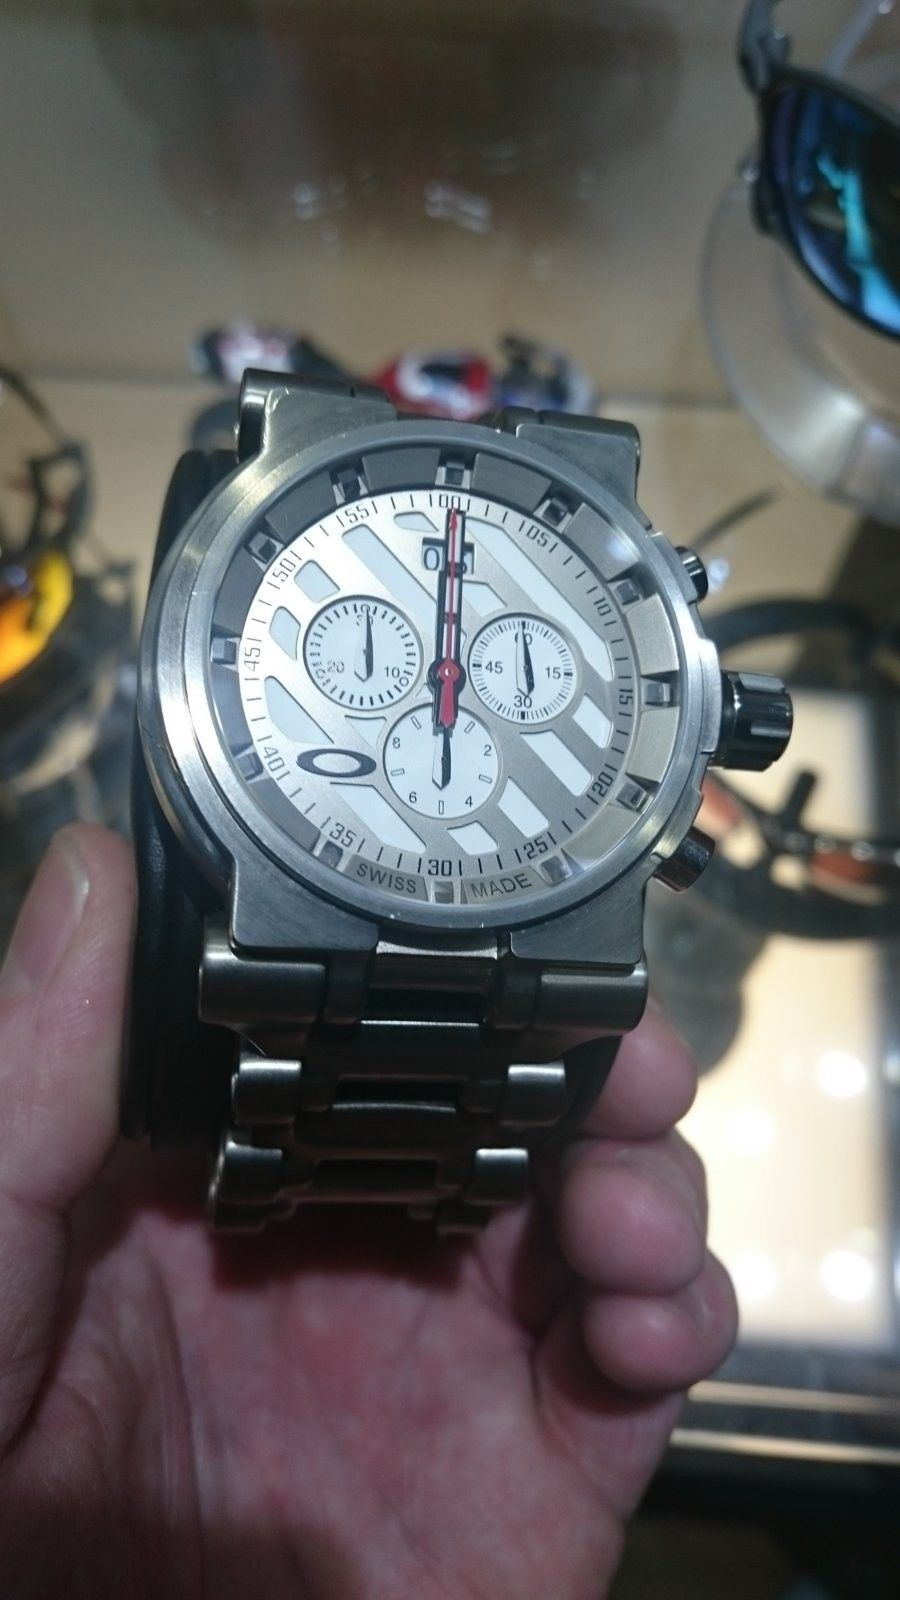 White face Hollowpoint watch - DSC_0934.JPG